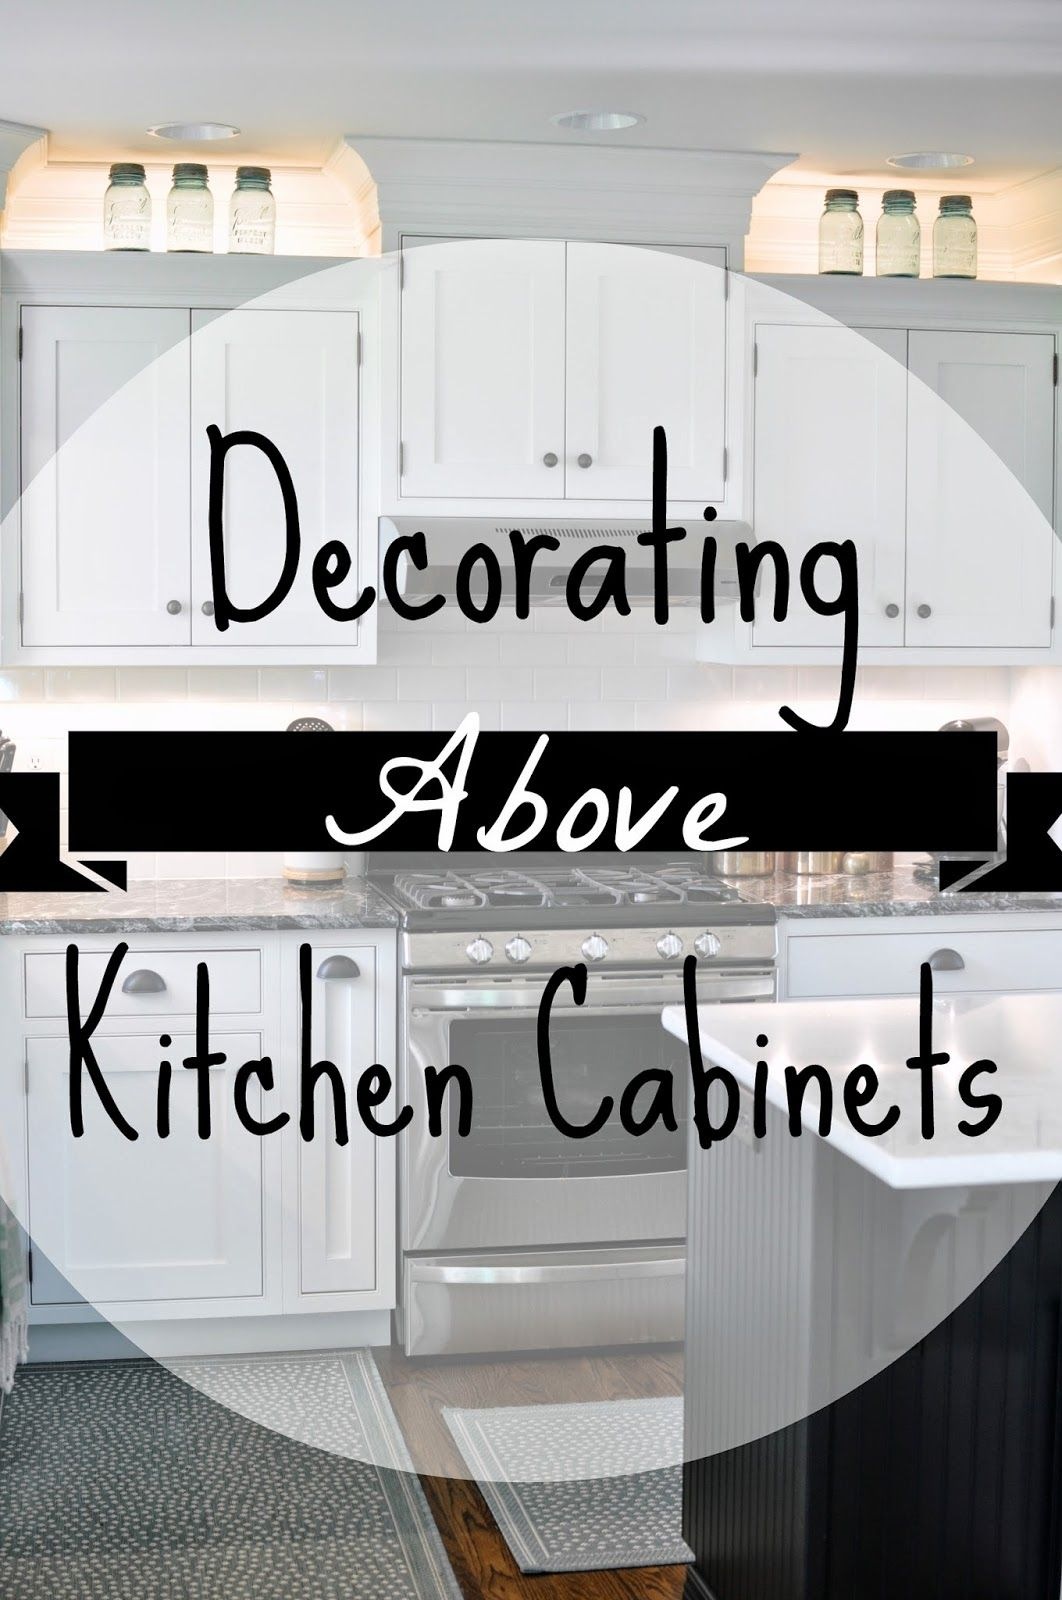 Ideas For Decorating Above Kitchen Cabinets From The